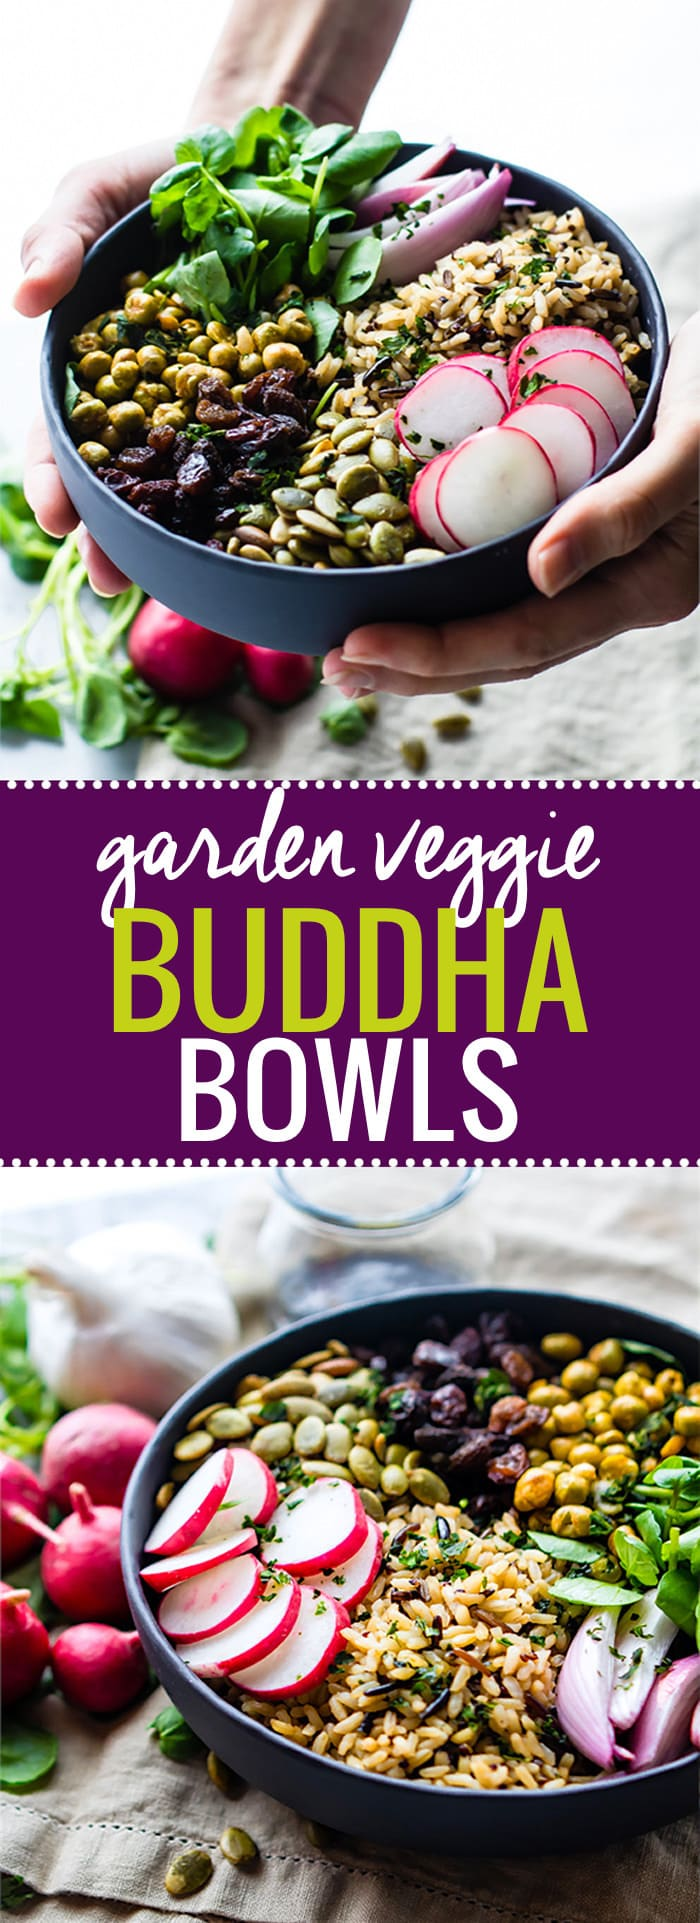 Nourishing Garden Veggie Vegan Buddha Bowl! This wholesome gluten free Buddha bowl recipe is filled with superfood ingredients that satisfy you and keep you healthy! @cottercrunch